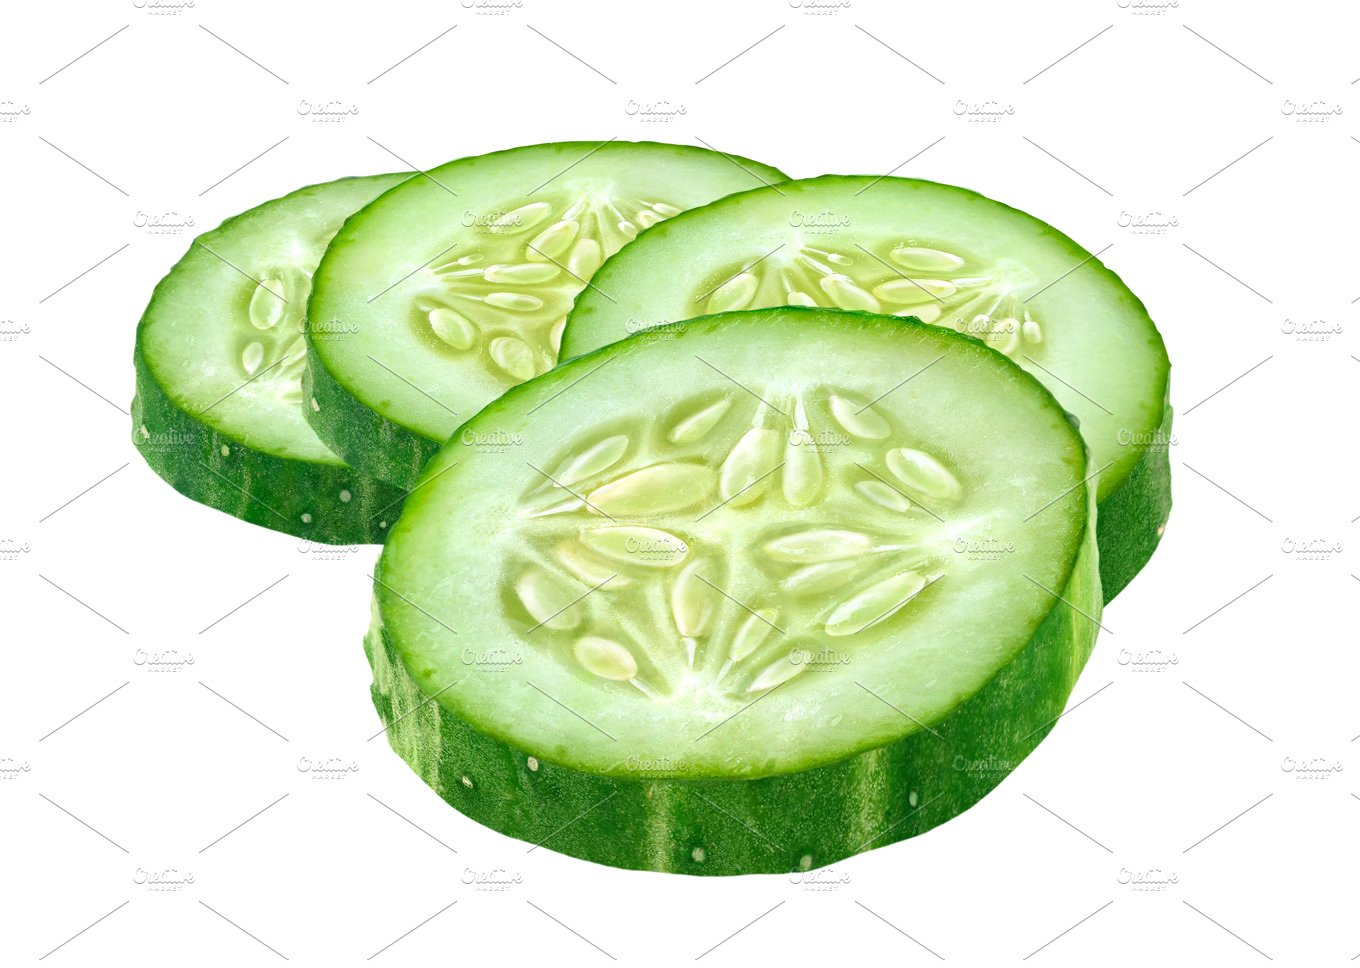 Cucumber Slice Png (105+ images in Collection) Page 1.